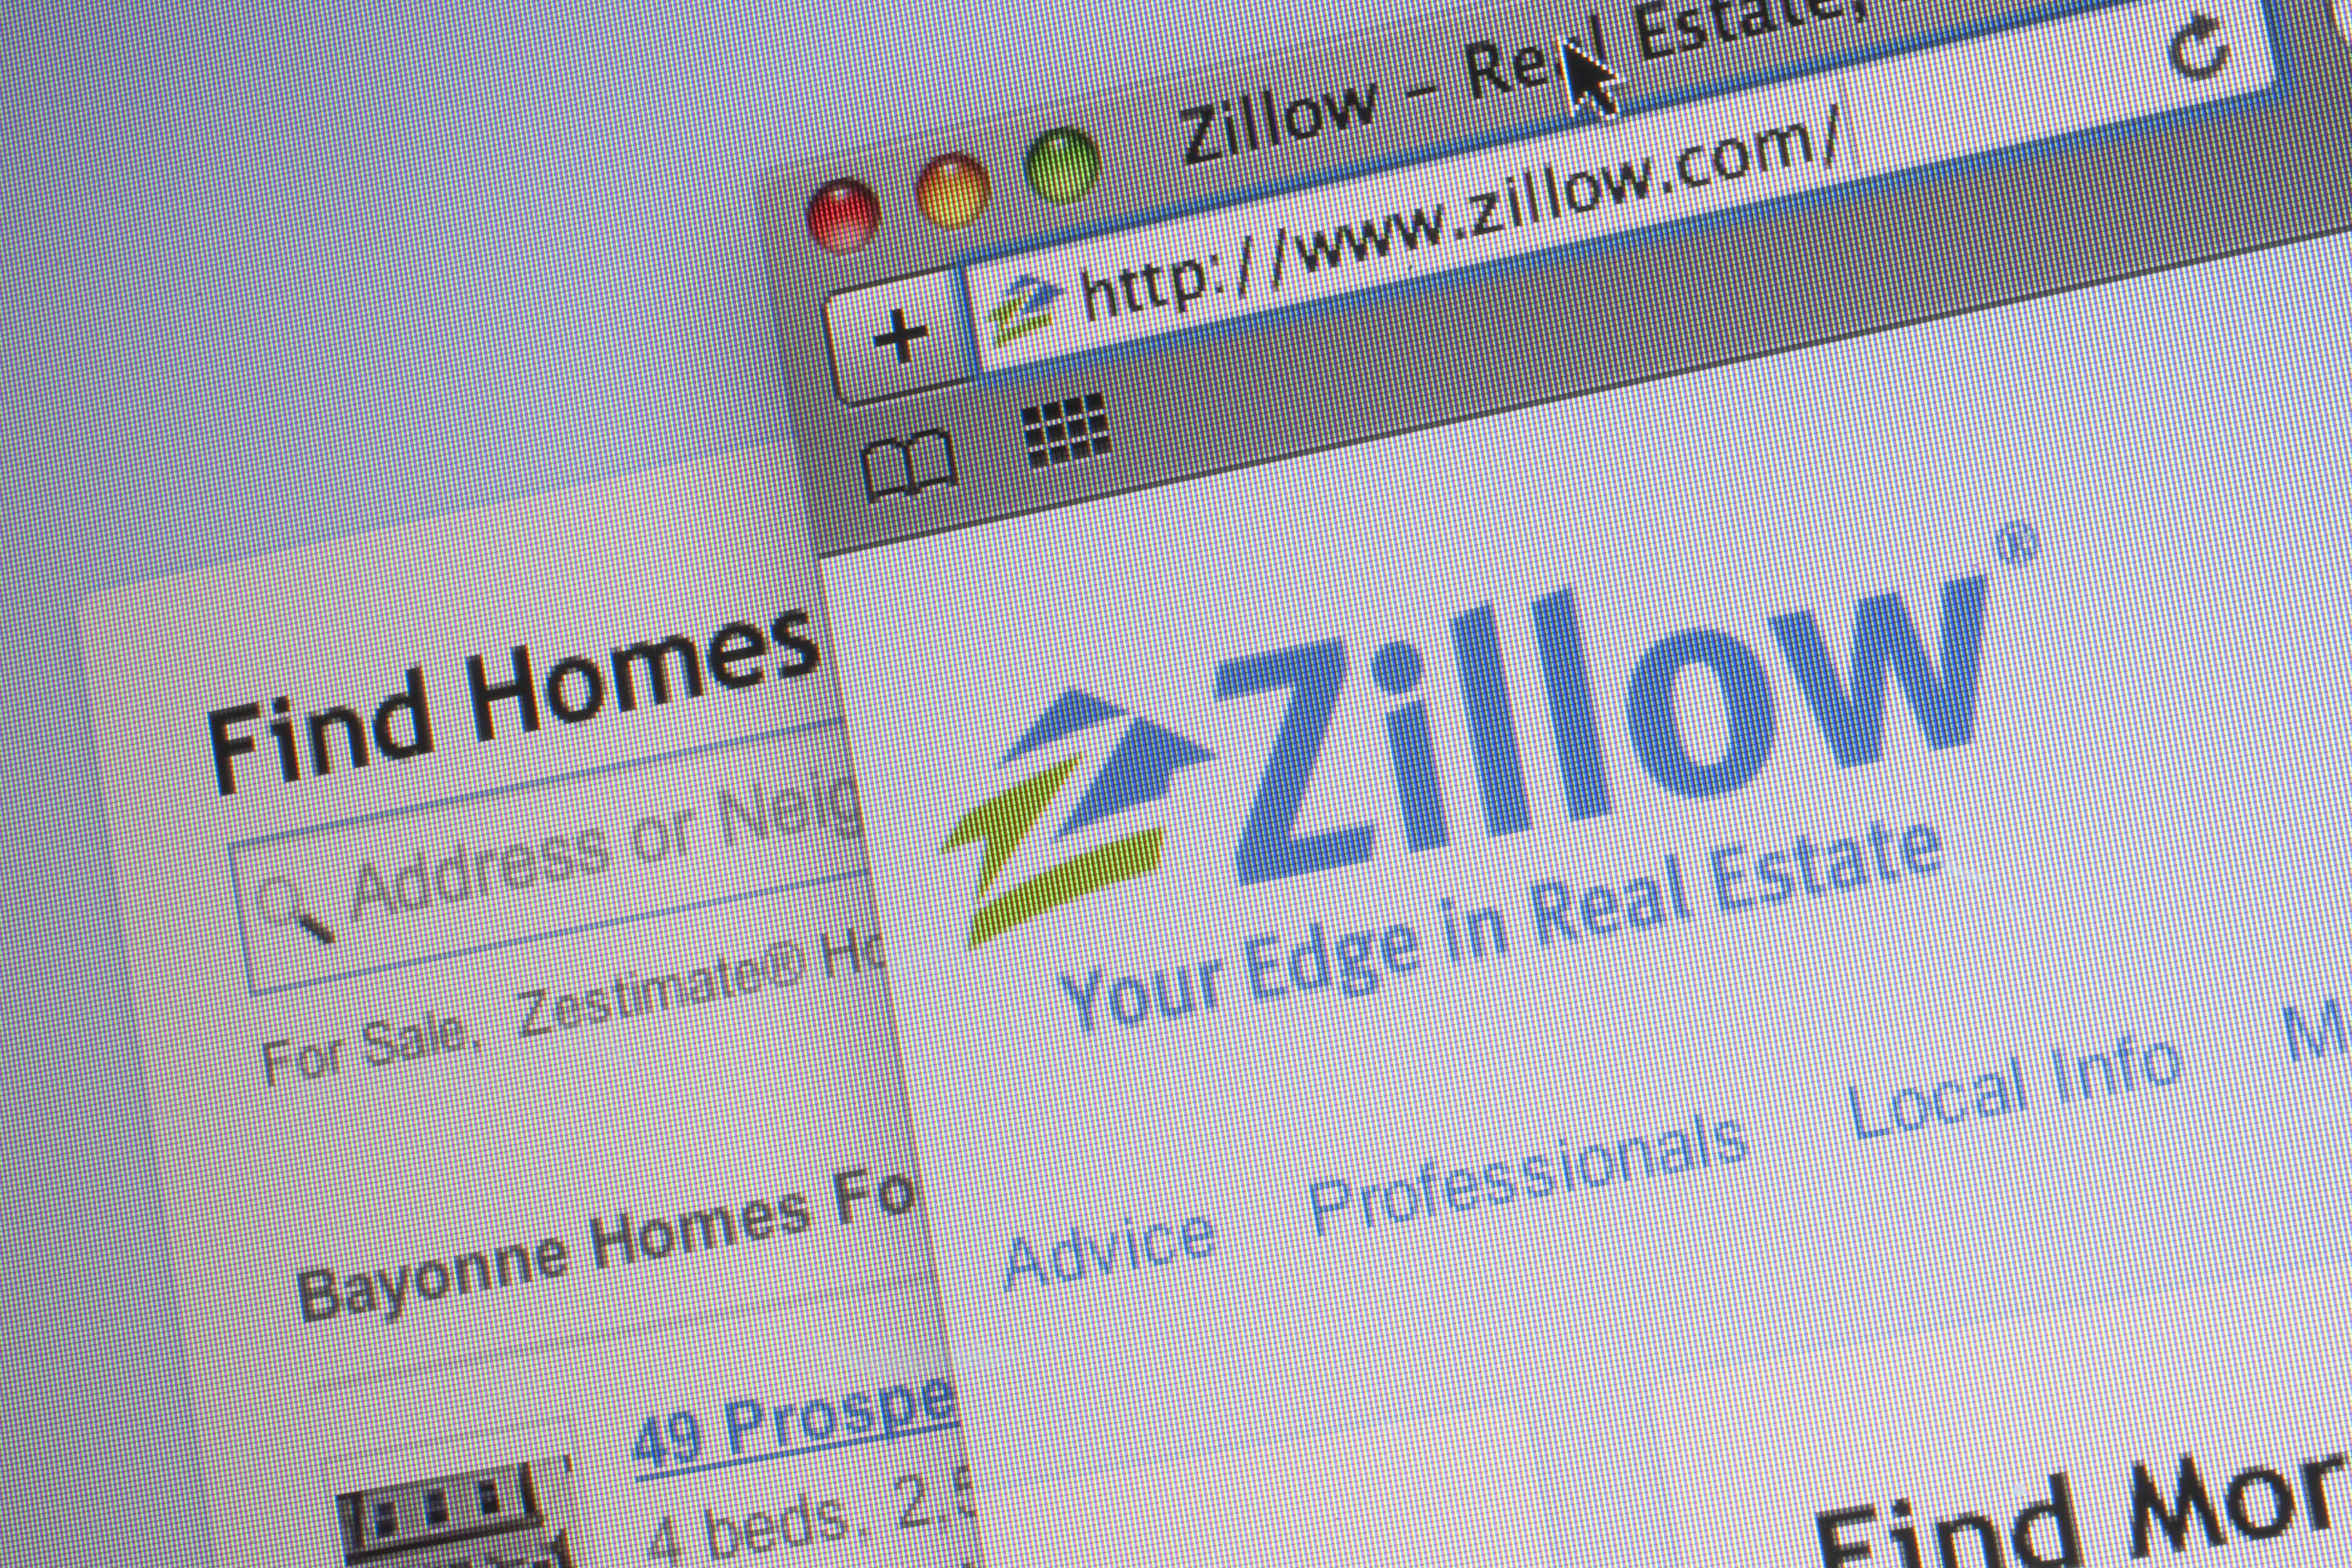 The Zillow Inc. Website